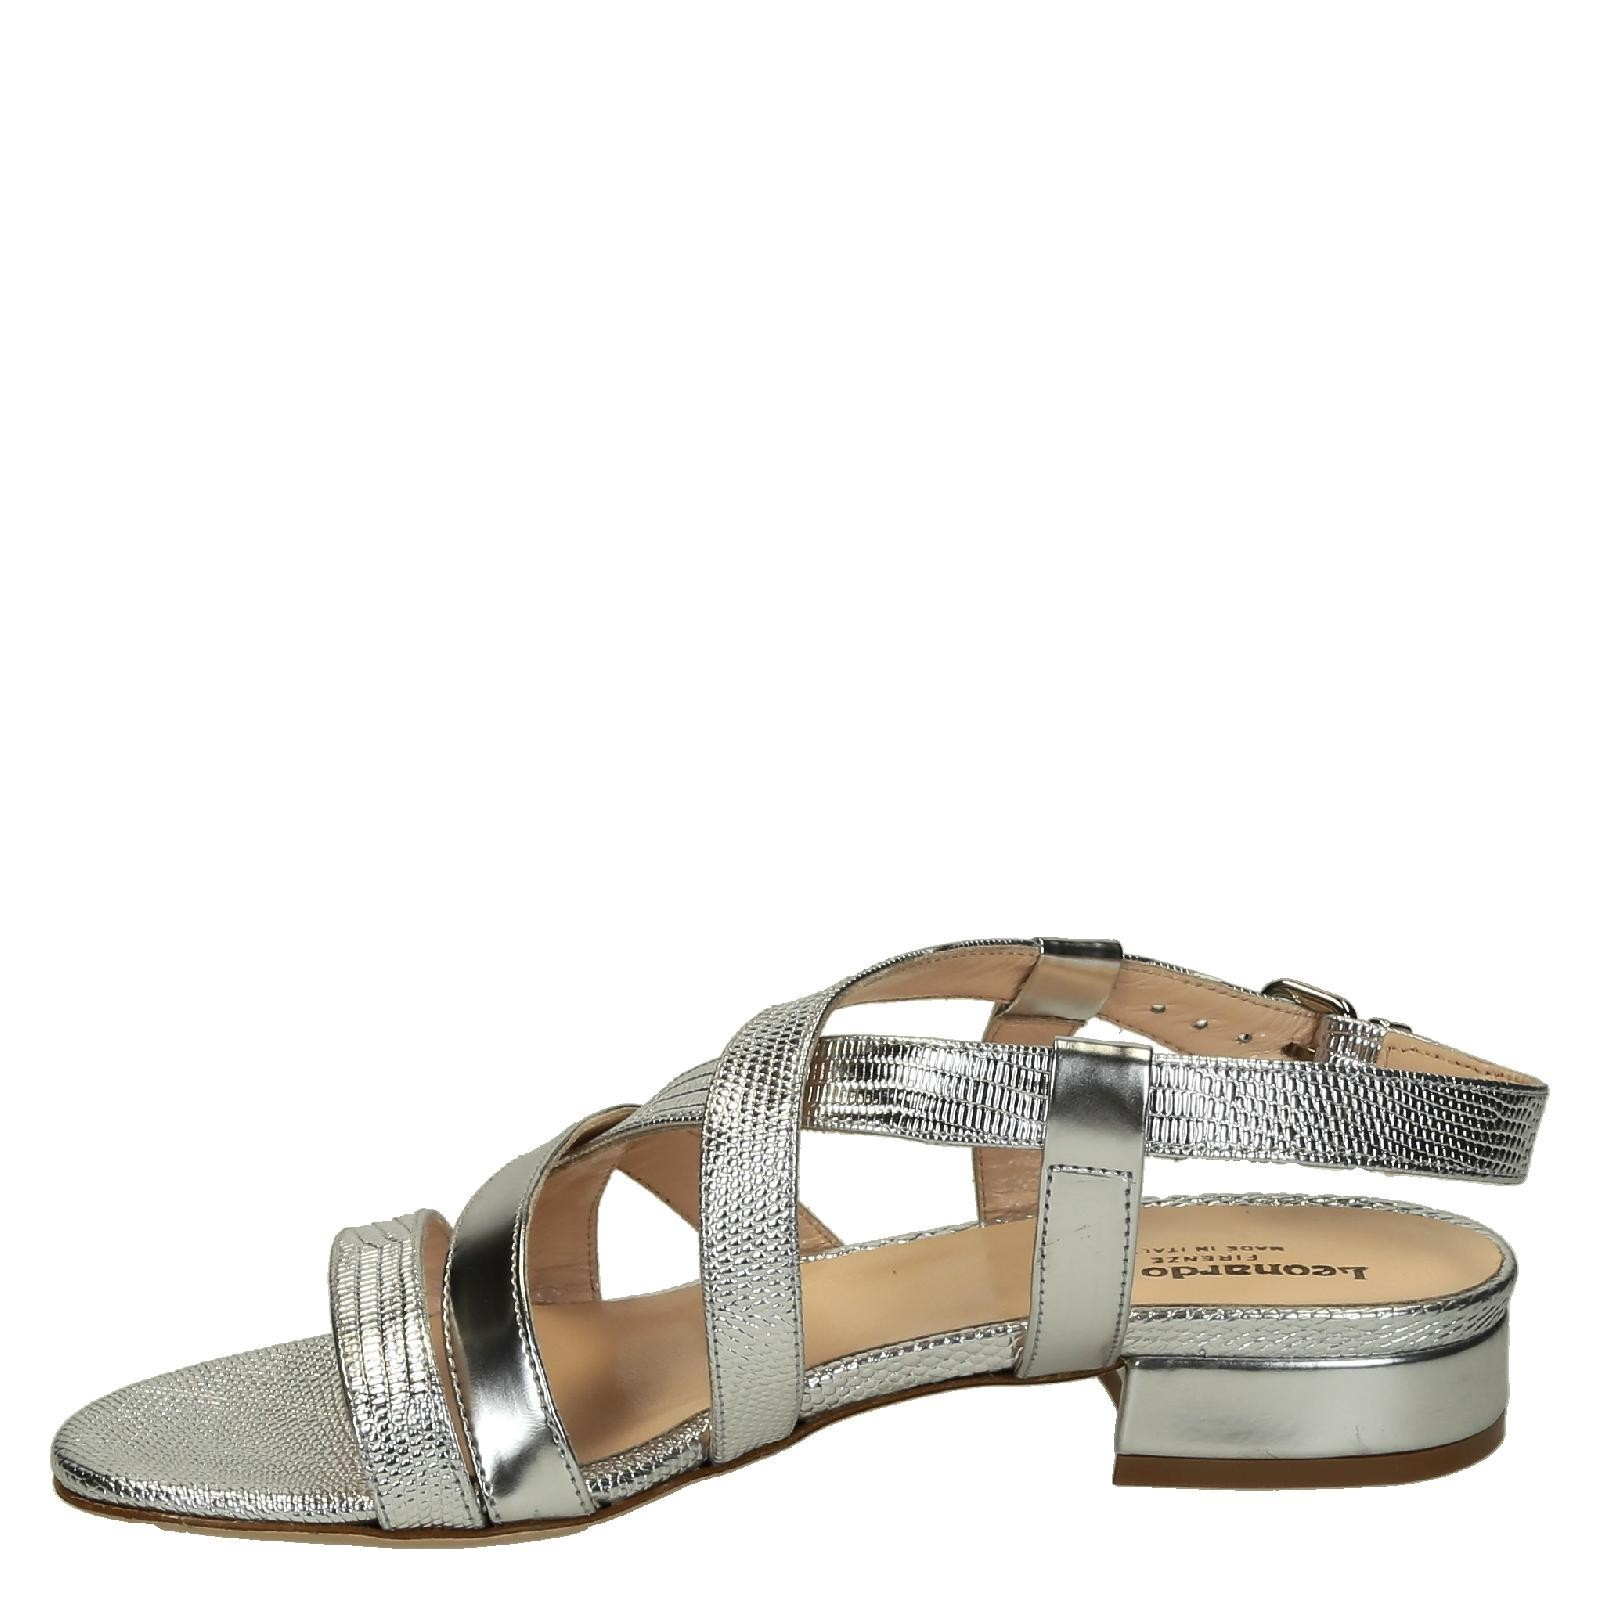 Women's low heels silver metallic leather strappy sandals ...